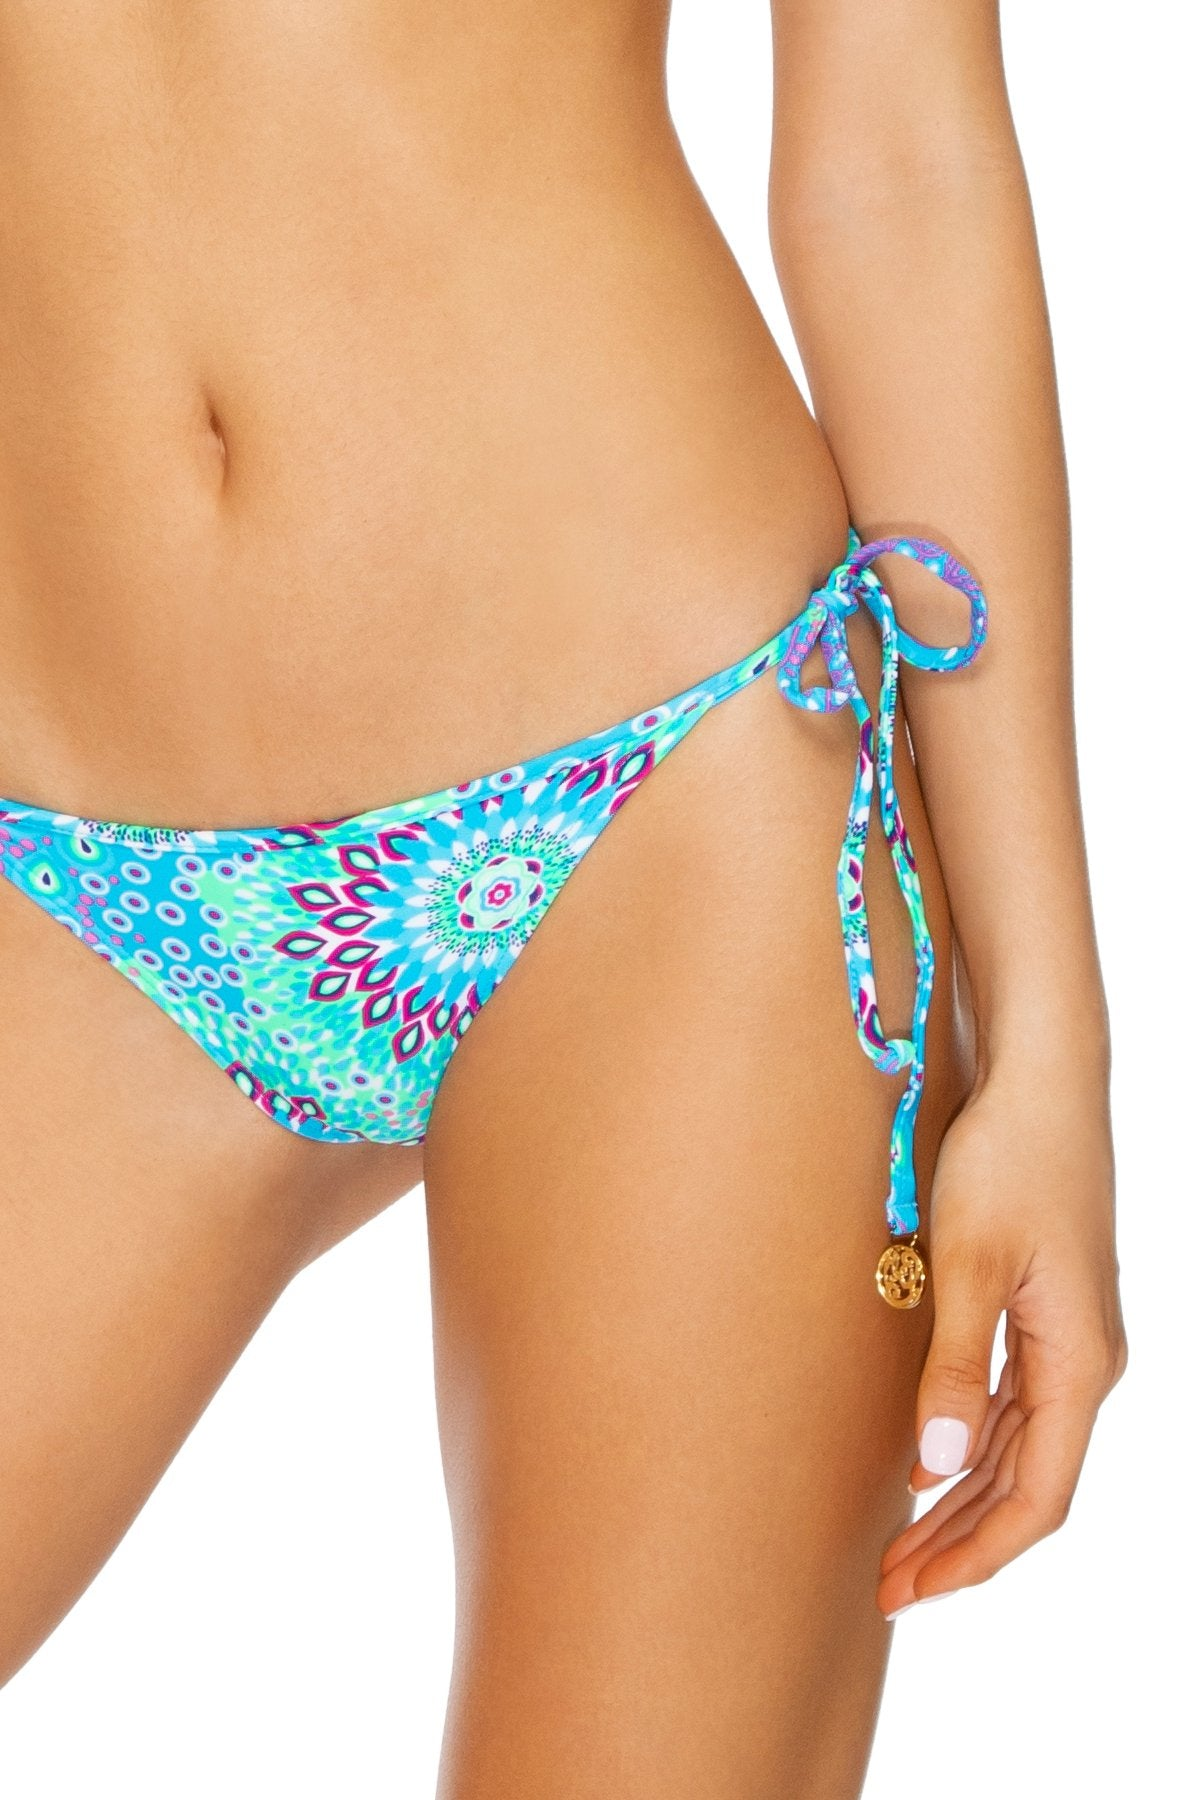 GOTAS DE CRISTAL - Molded Cup Tri Halter & Gathered Back Tie Side Brazilian • Multicolor